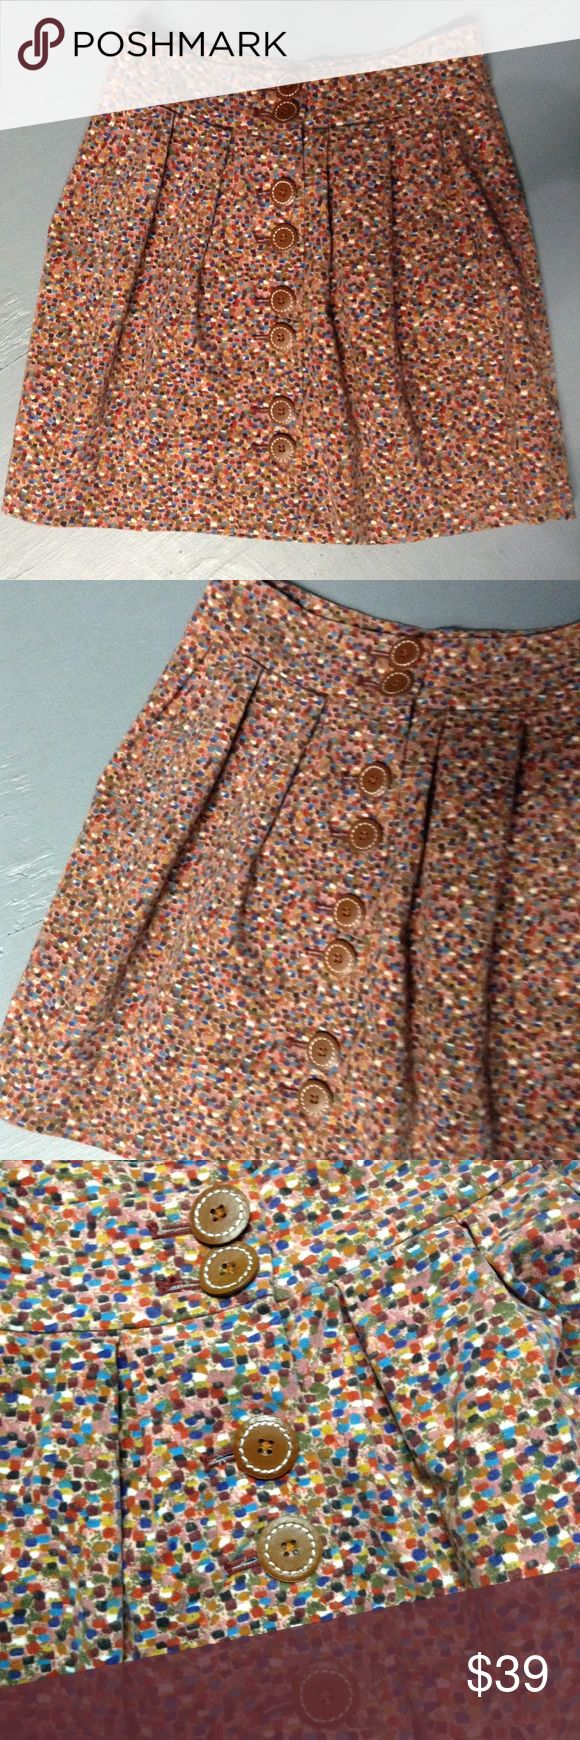 """elevenses ANTHROPOLOGIE velvet confetti skirt 0 2 Muted multicolor 'confetti' type pattern skirt, perfect for fall/winter. From Elevenses, sold only at Anthropologie. Machine washable 96/4 cotton/spandex. Fully lined (picture 6). The buttons are either leather or a good faux leather, it's hard to tell for sure, but they're so cute! Semi-full cut, with side slash pockets. Perfect condition! Tagged as 0, but fits most 2 as well: the waist measures 29.5"""", and it's 19"""" long. Anthropologie Skirts…"""